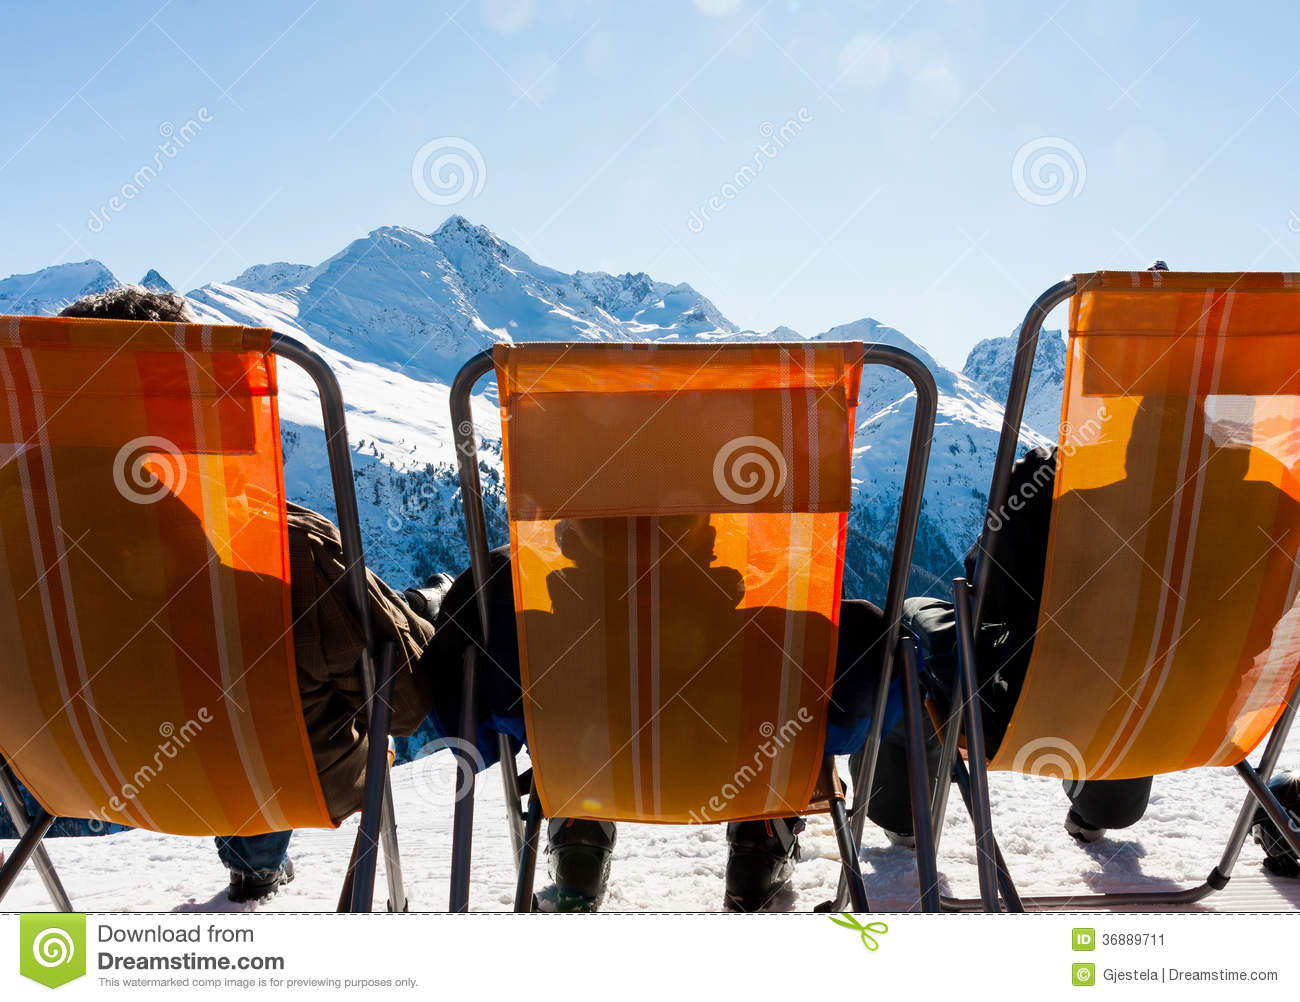 Download Rilassi immagine stock. Immagine di austria, skiing, vista - 36889711